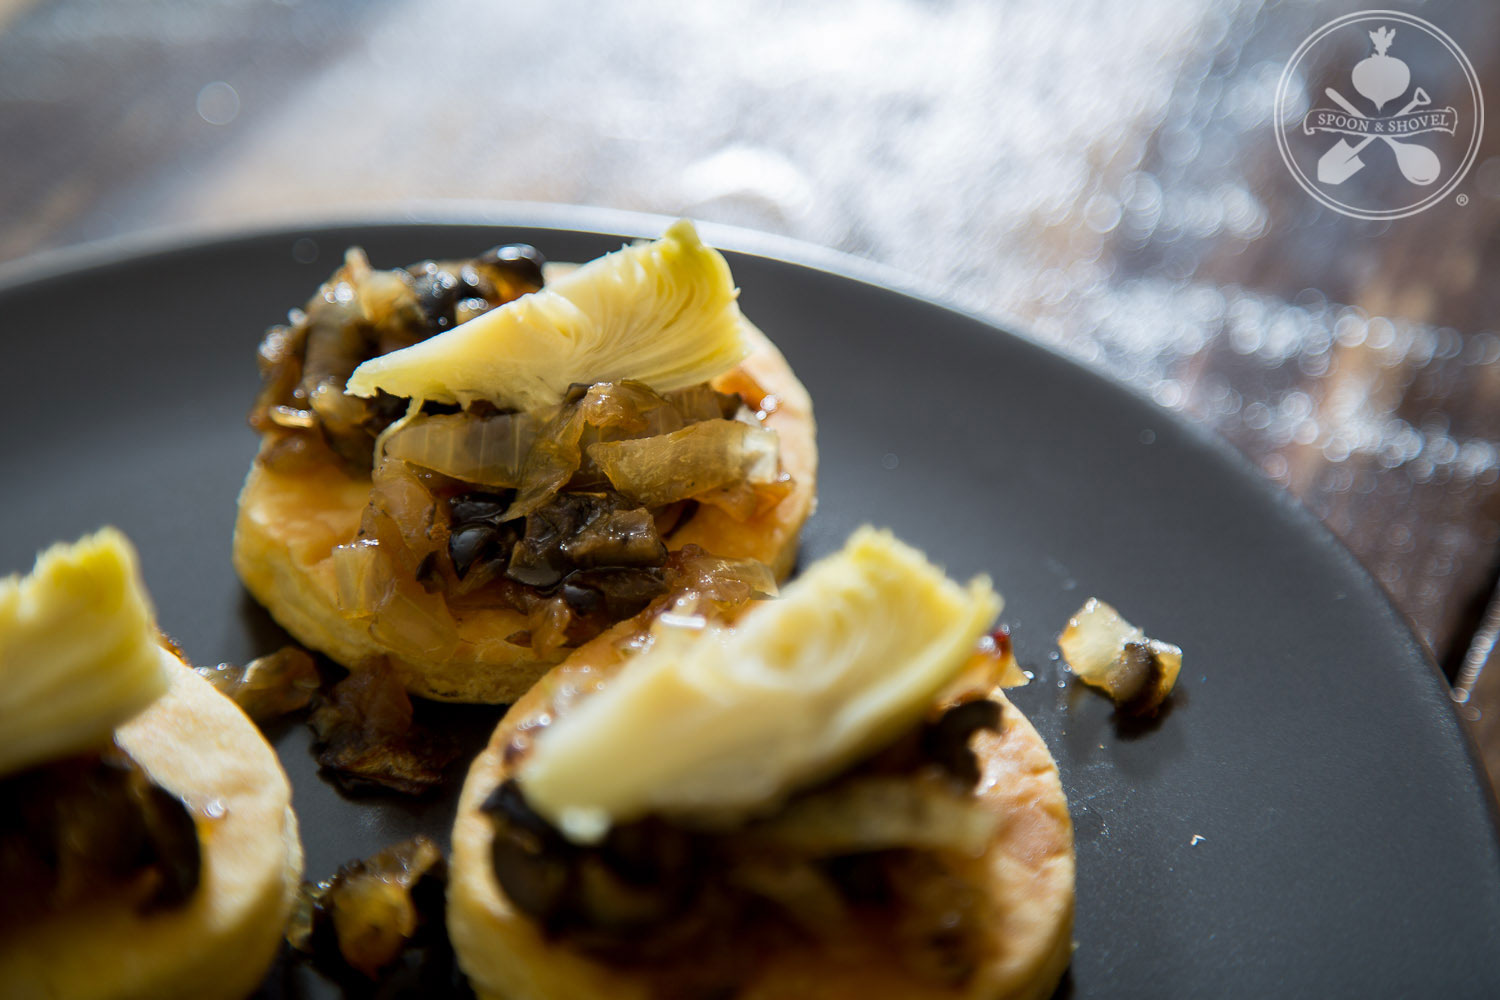 Caramelized onion and artichoke tarts from The Spoon + Shovel